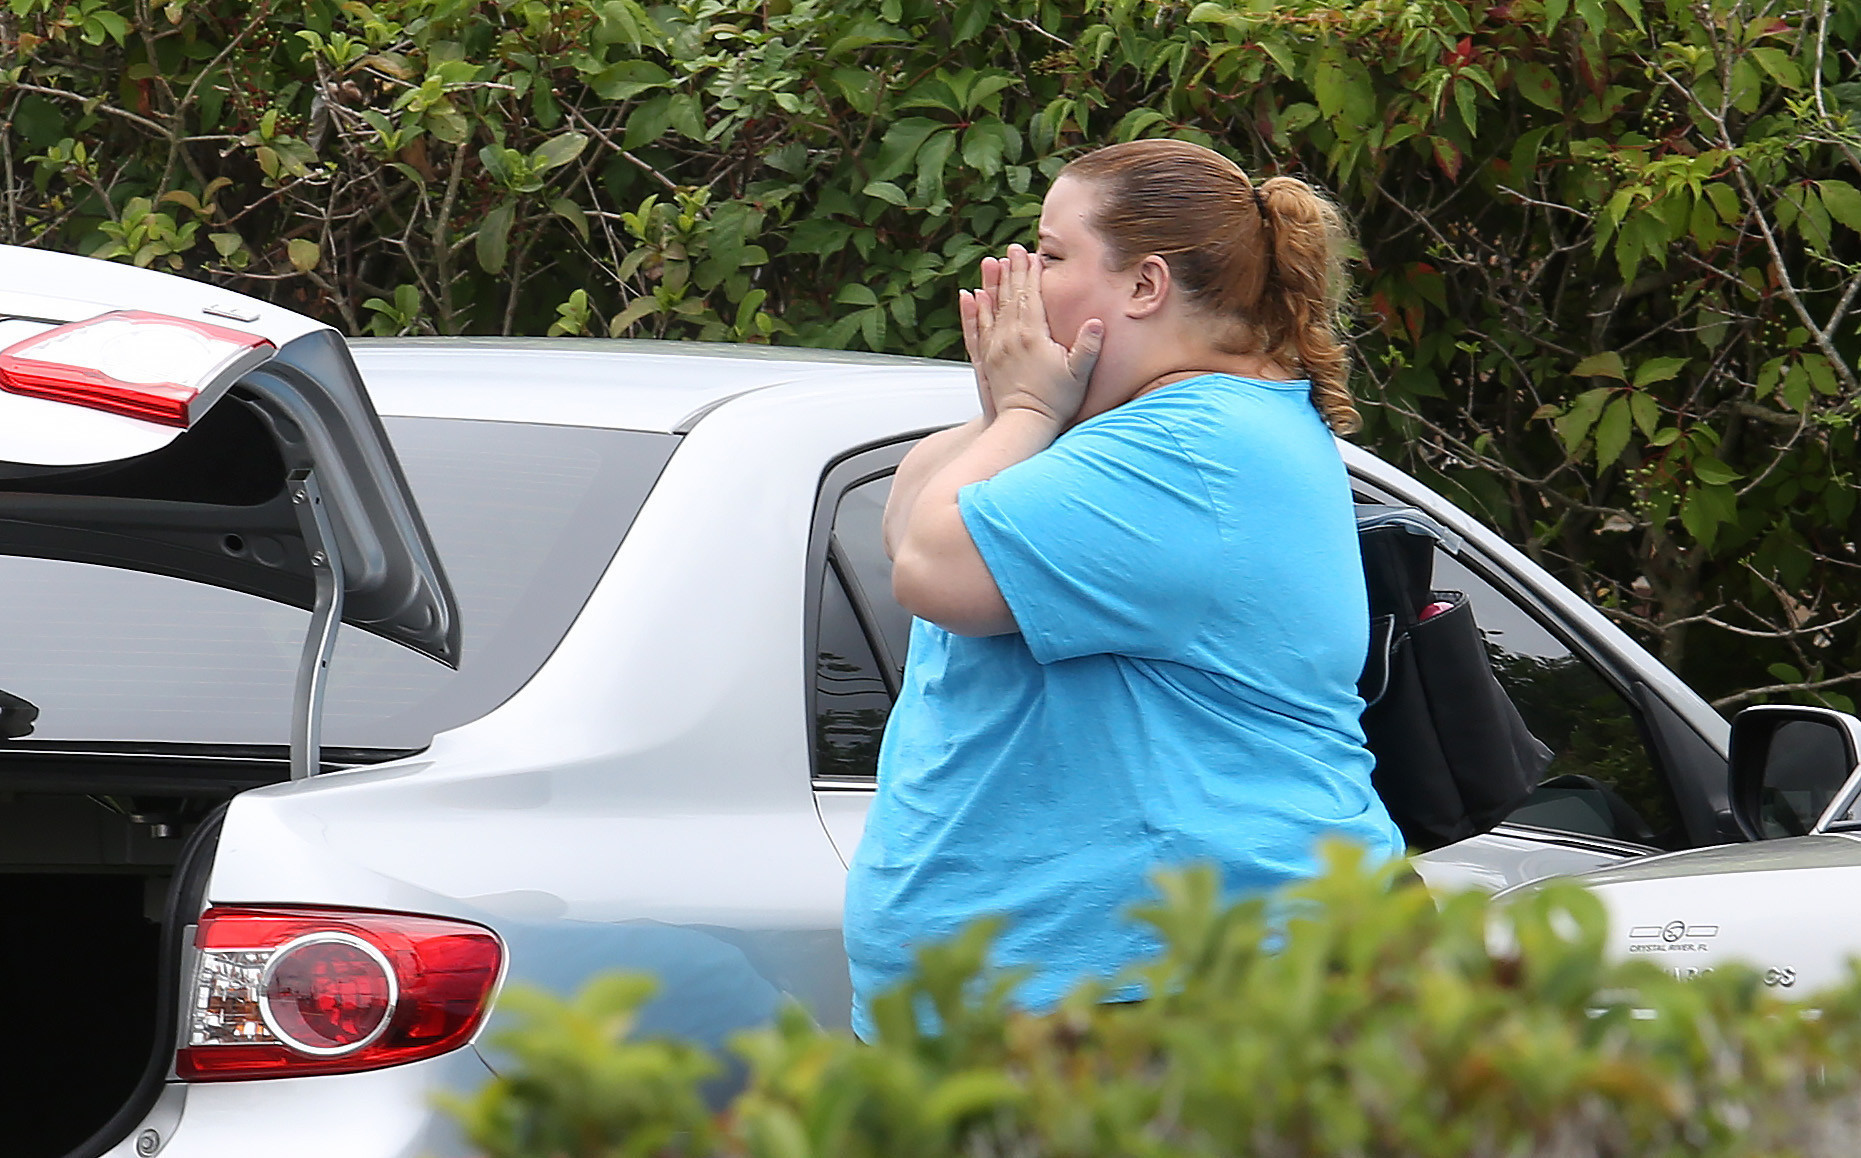 911 caller in Fiamma workplace shooting: 'It's like something out of a movie'